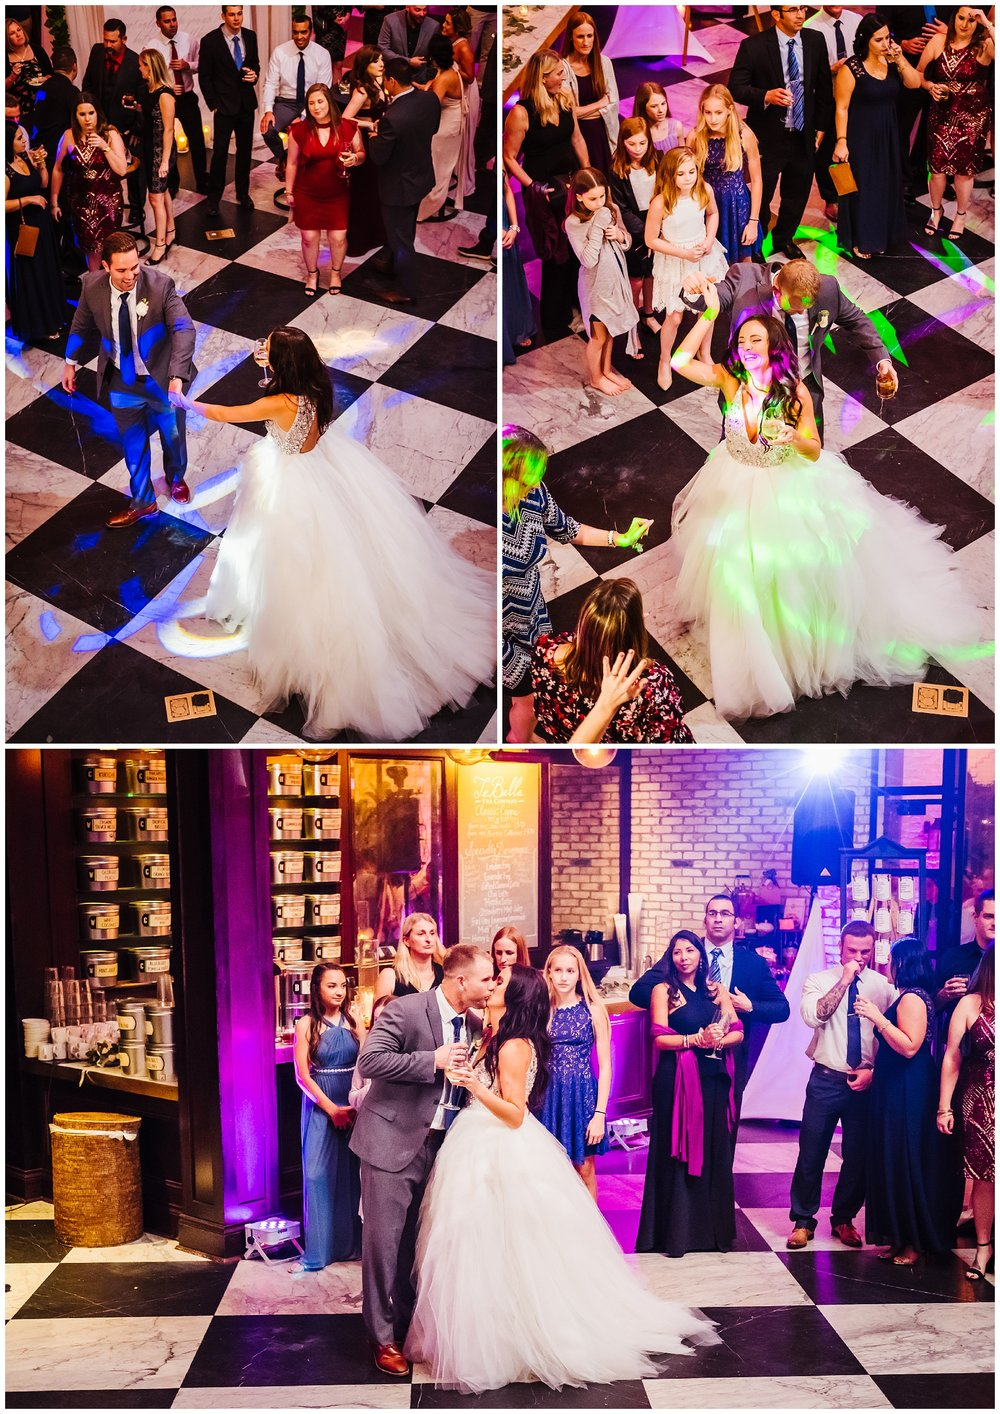 tampa-wedding-photographer-oxford-exchange-garland-candlelight-gold-hayley-paige_0057.jpg